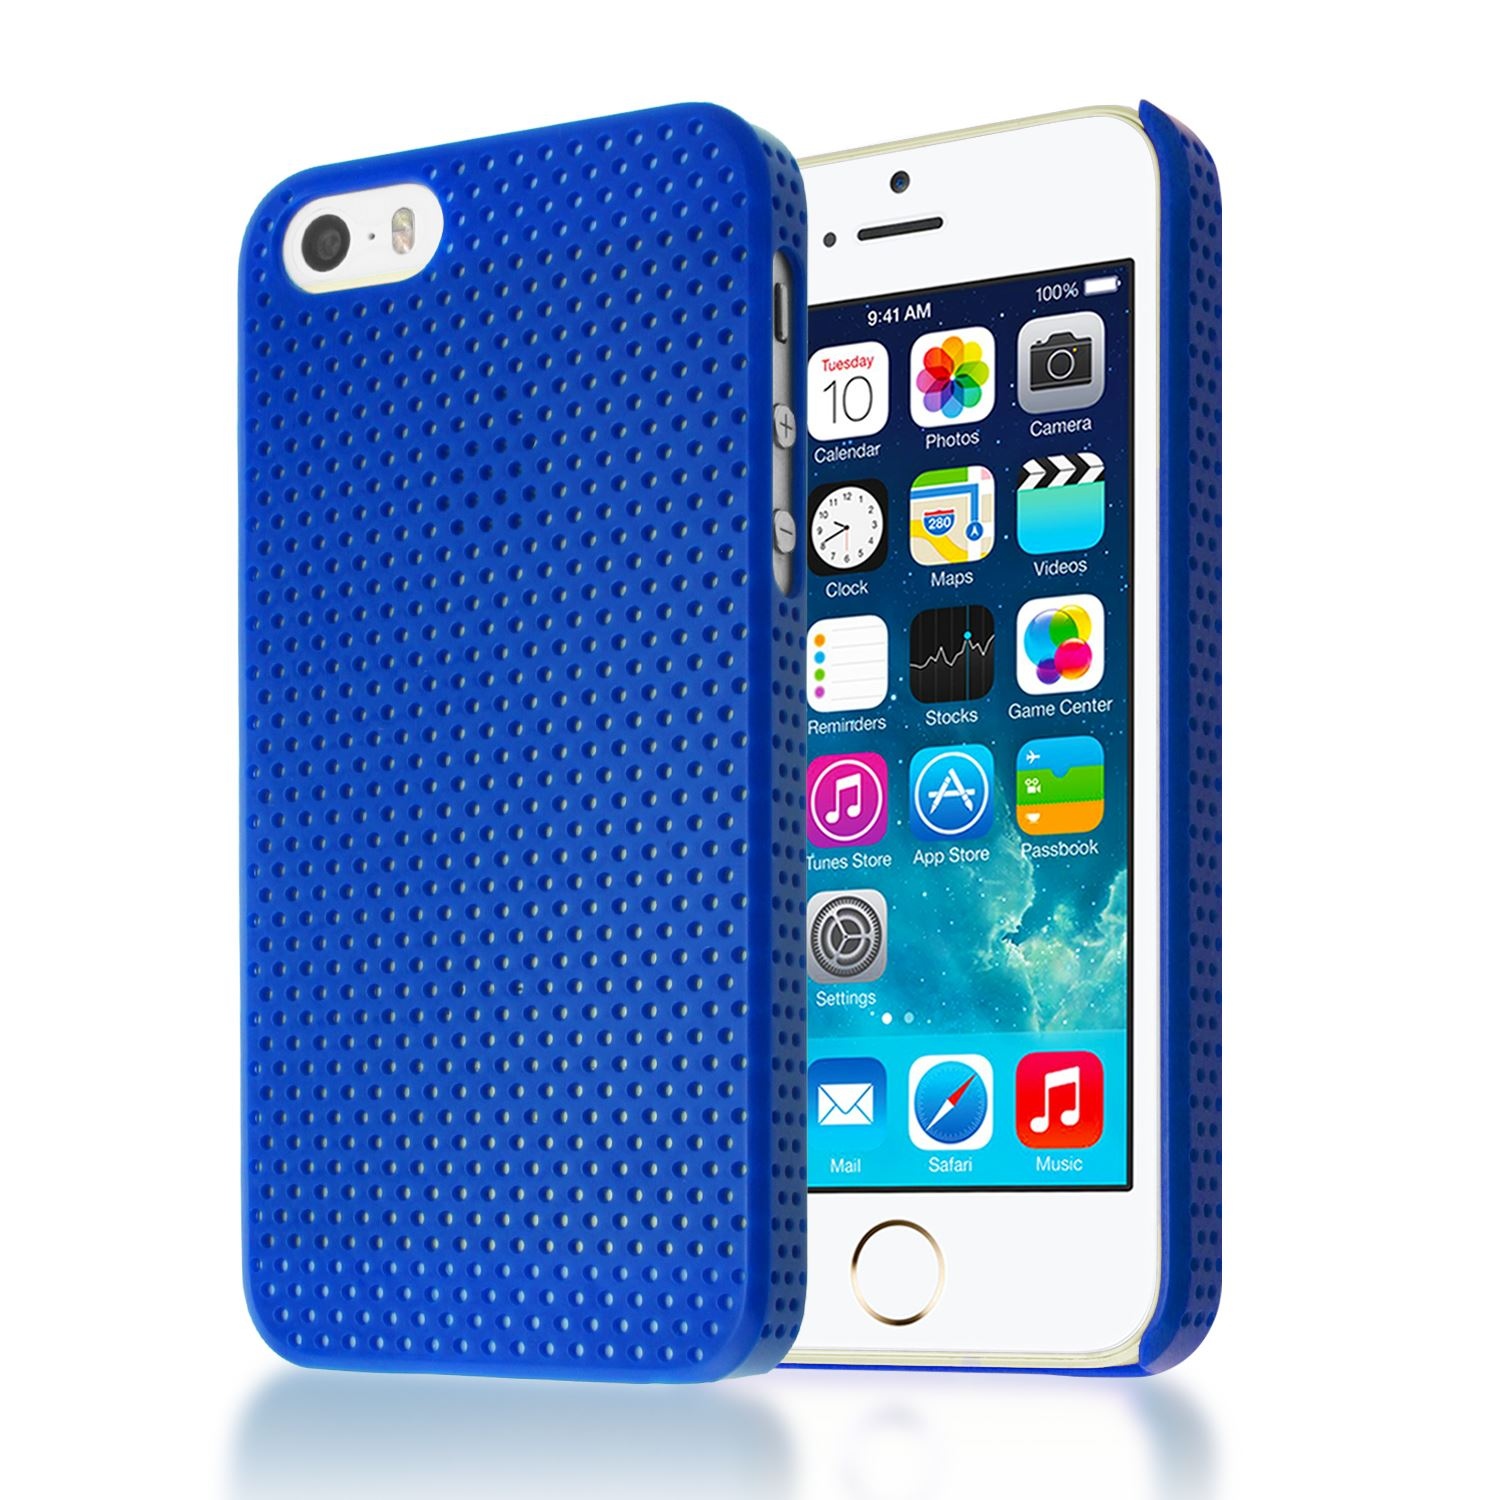 PERFORE-MAILLE-ETUI-IMPACT-MAT-COUVERCLE-BOITIER-PLASTIC-ARRIERE-DUR-IPHONE-5S-5